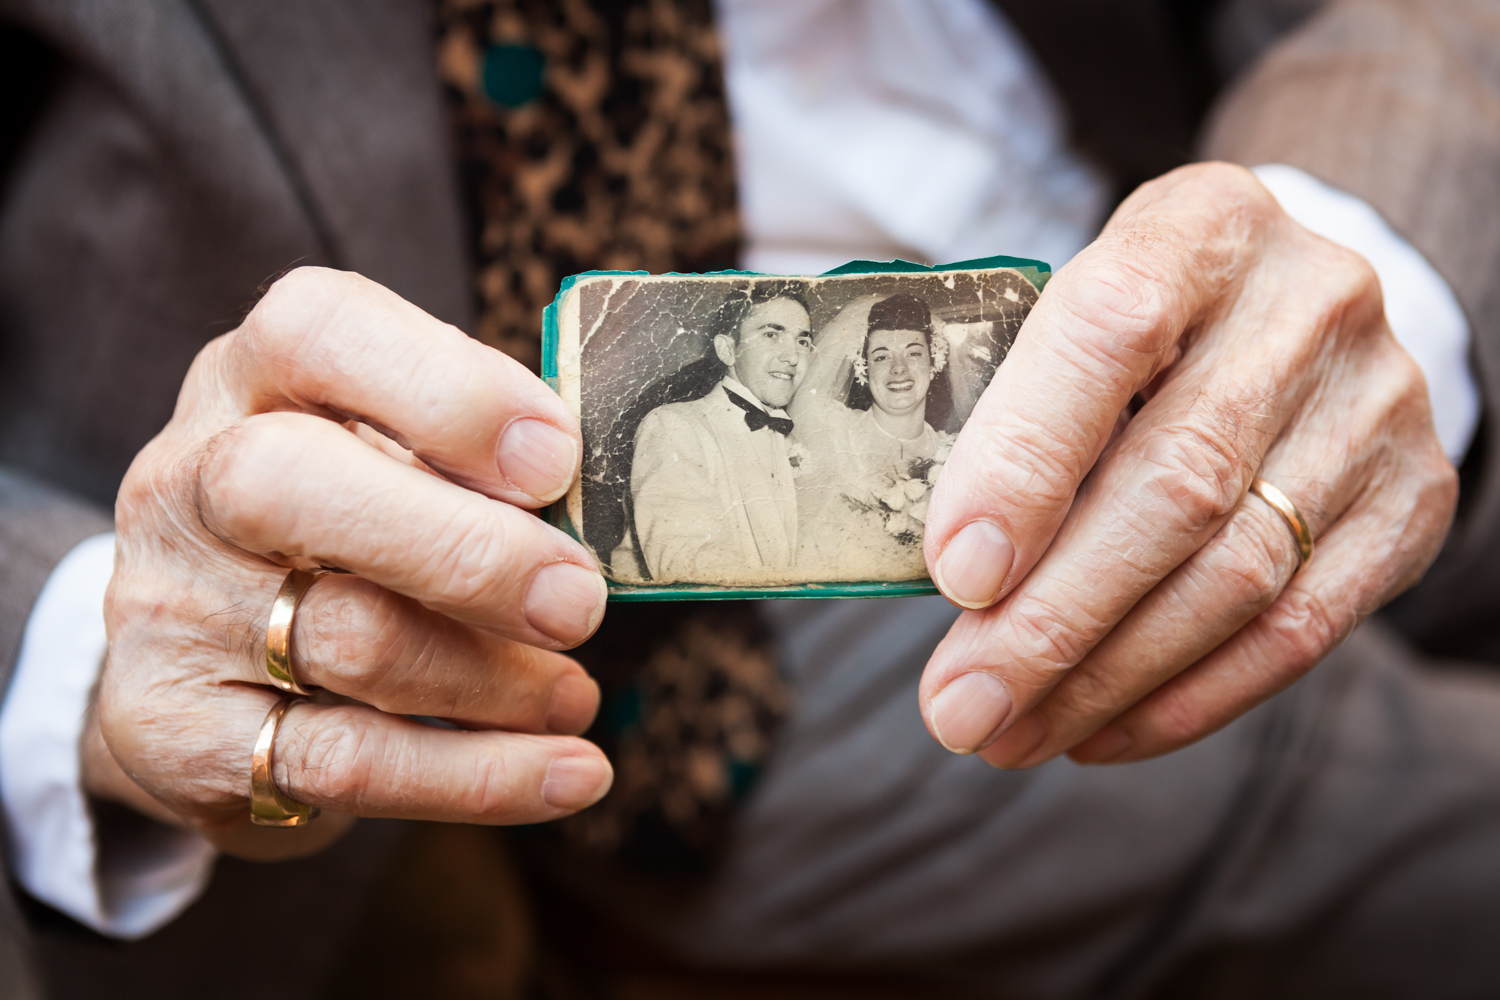 Close up on grandfather's hands holding black and white wedding portrait